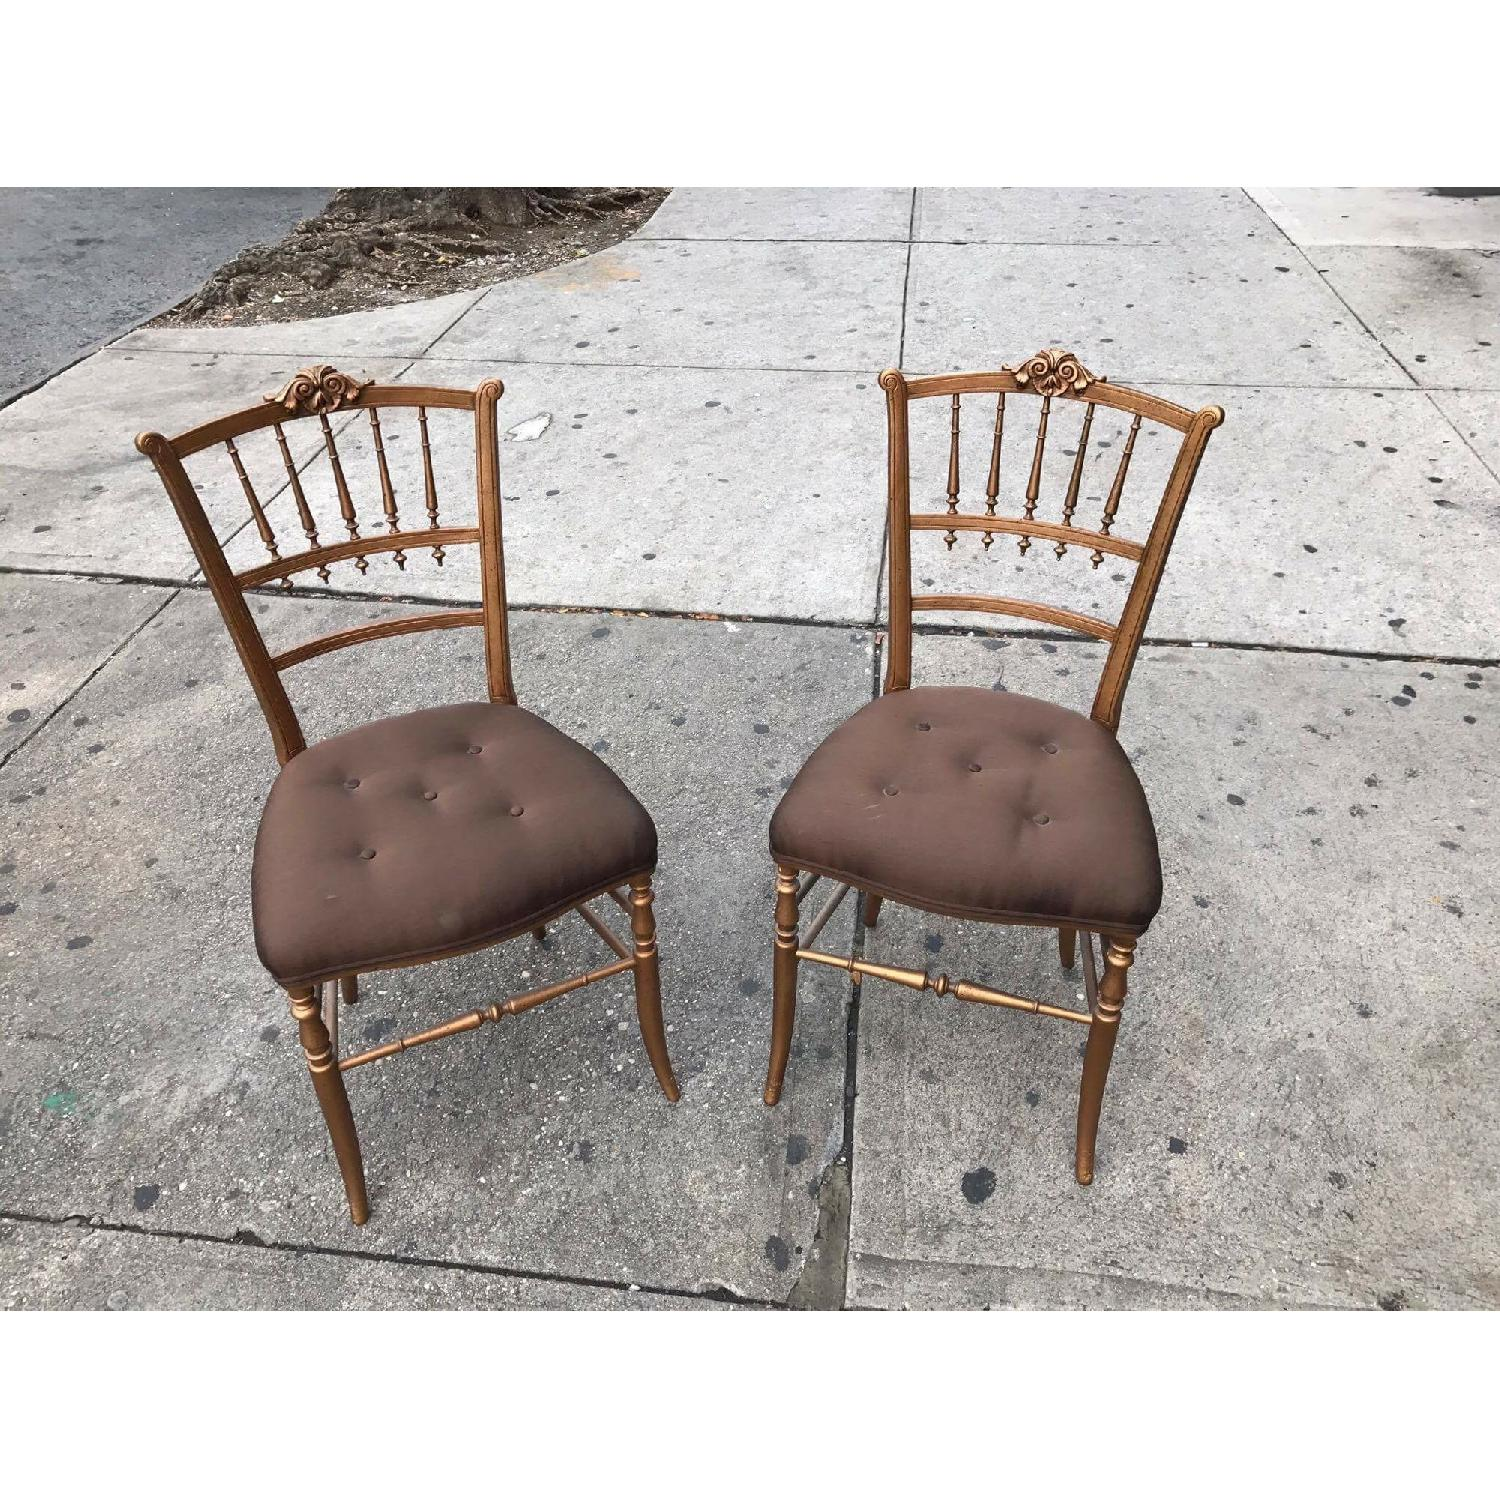 1970s Vintage Chairs - image-1